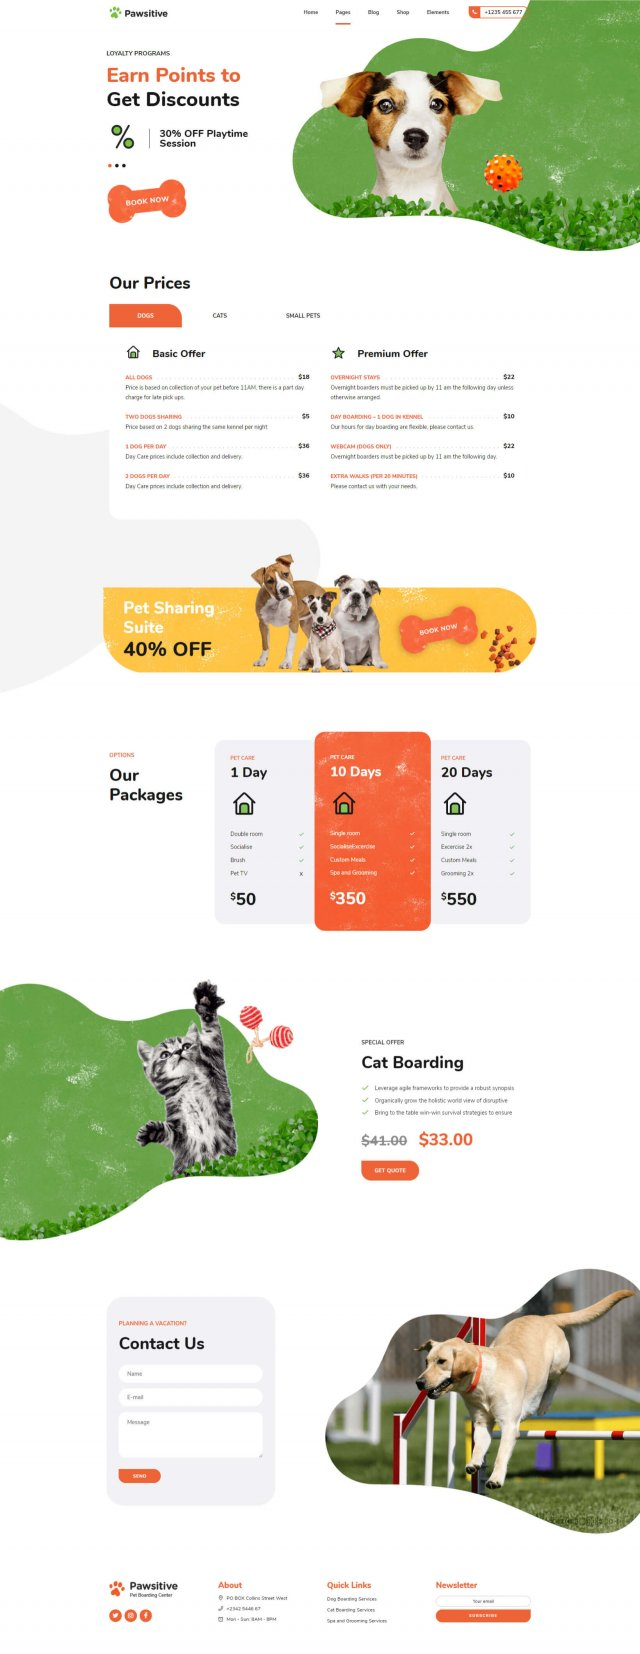 http://pawsitive.bold-themes.com/wp-content/uploads/2019/09/Buddy-Prices-640x1654.jpg